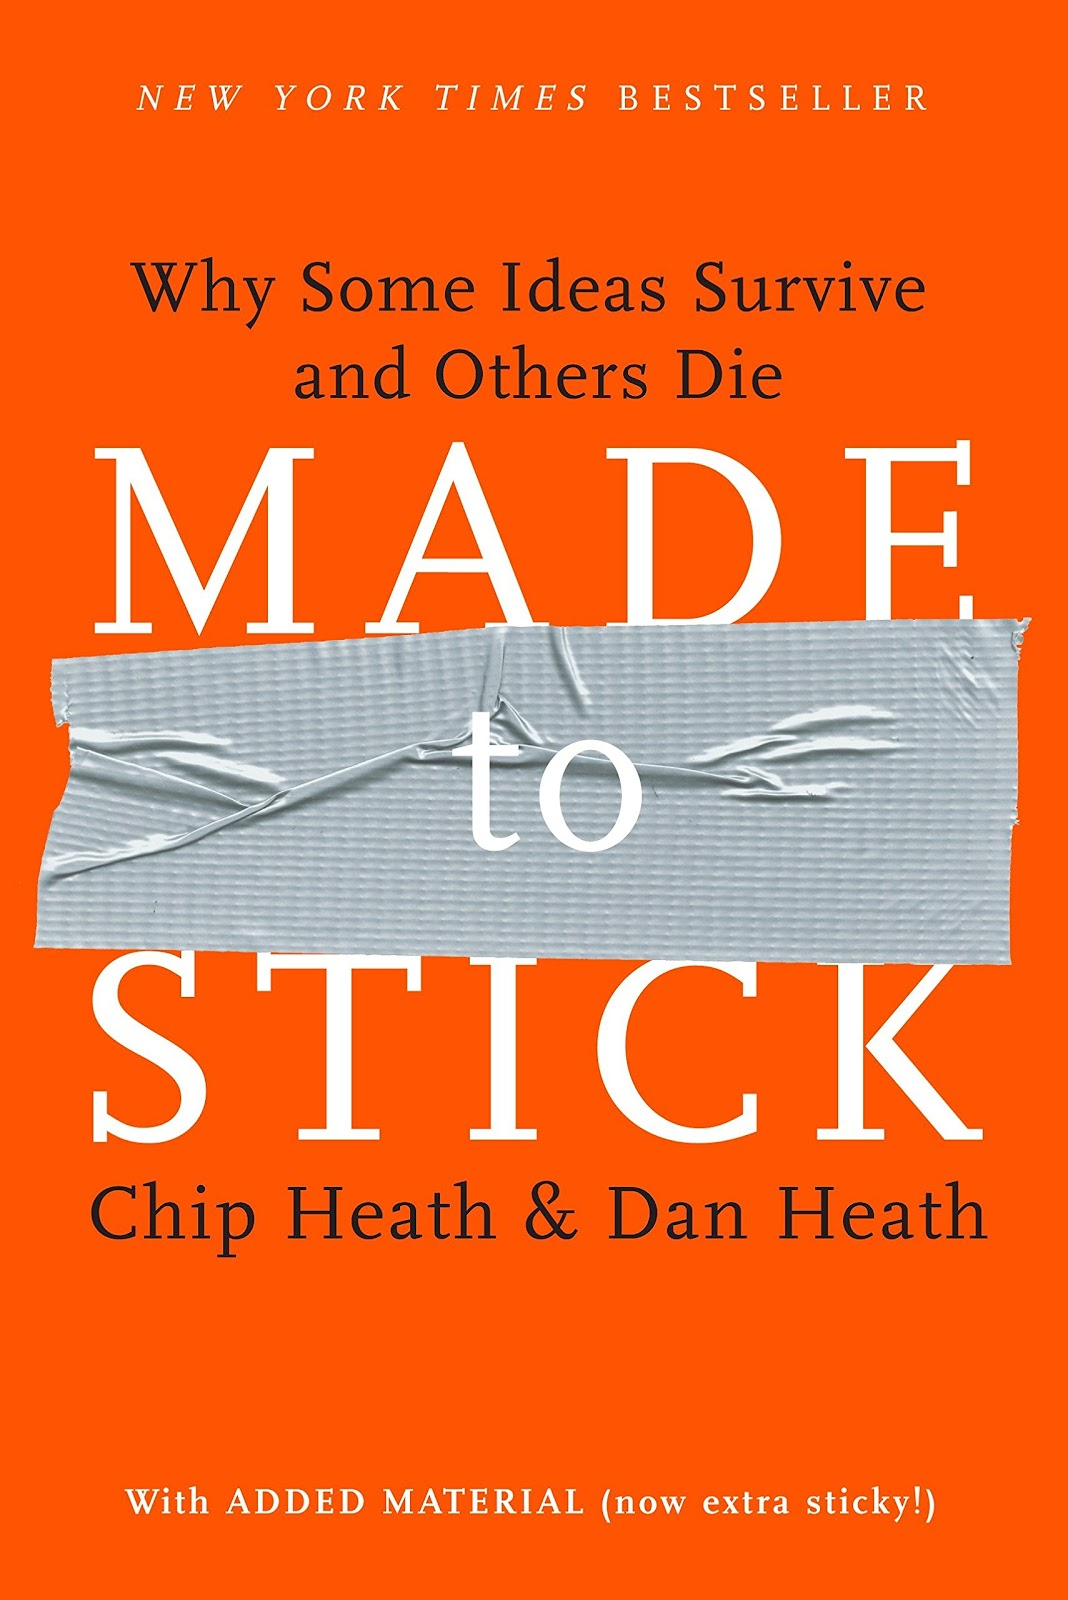 Made to Stick: Why Some Ideas Survive and Others Die by Chip and Dan Heath